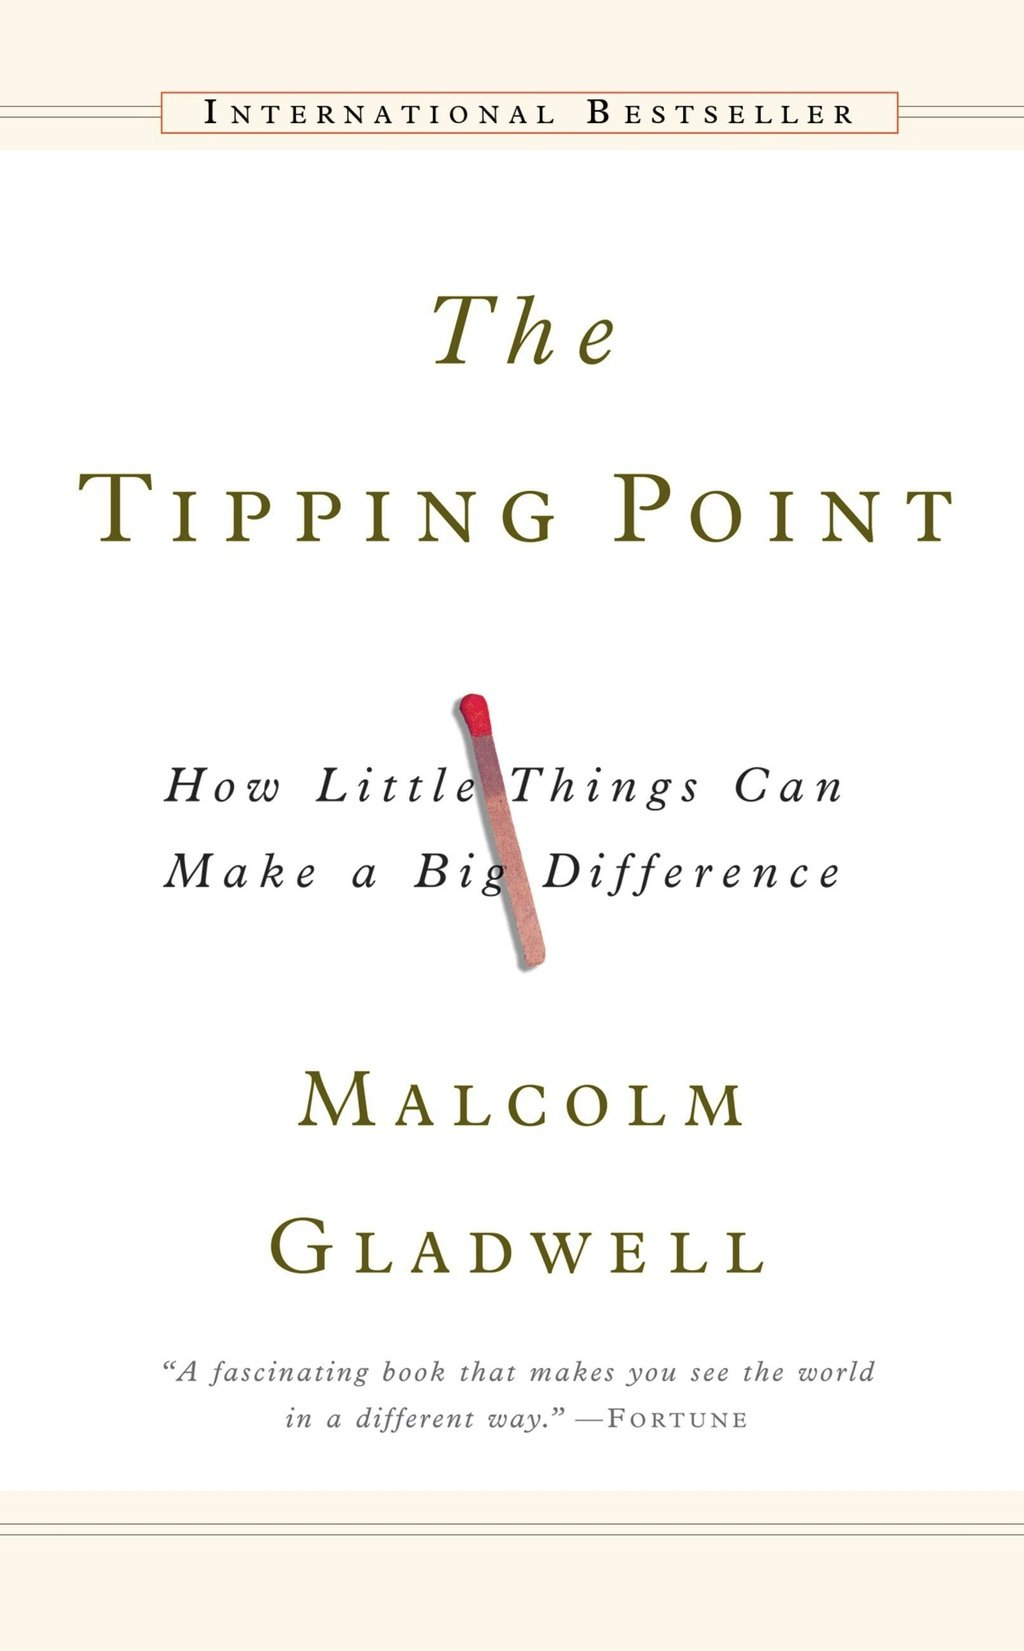 The Tipping Point ISBN-13 9781417665792